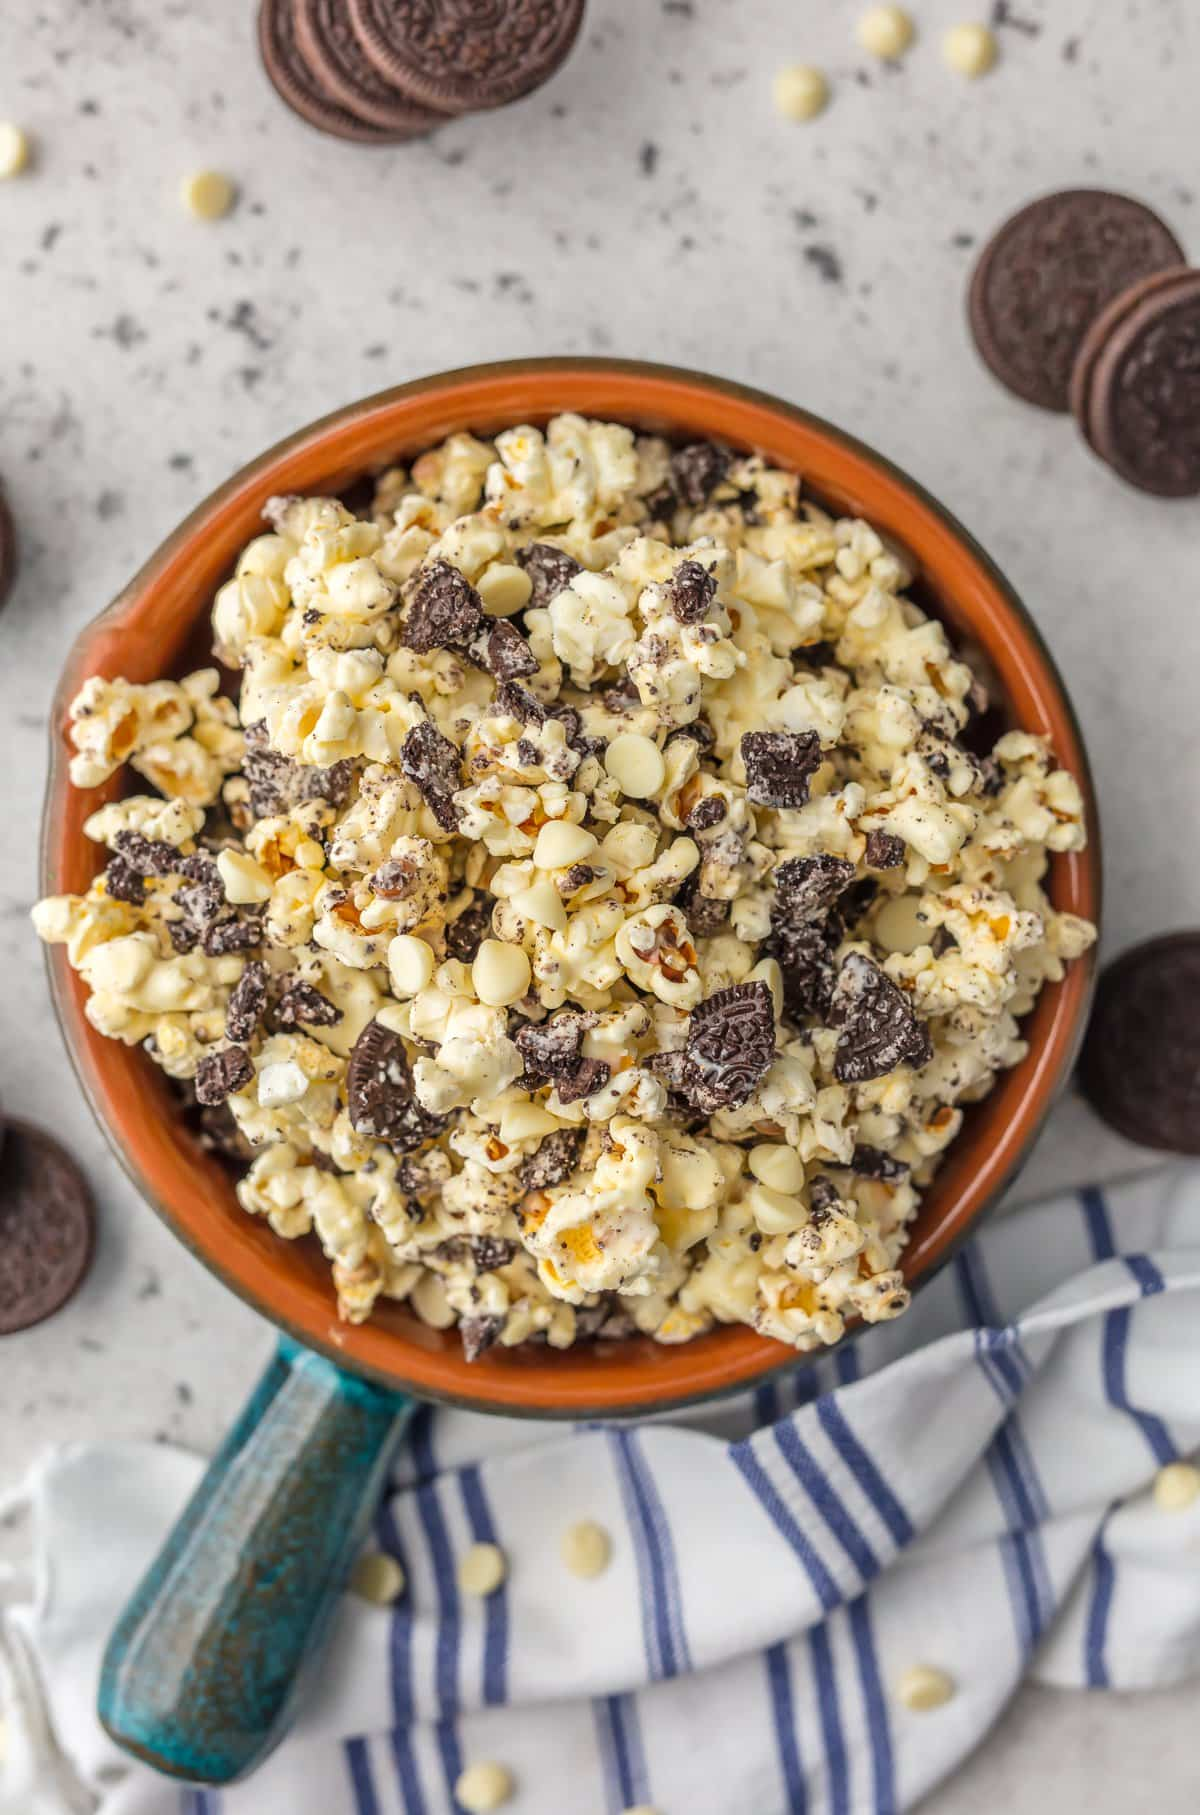 This COOKIES AND CREAM POPCORN made with white chocolate and oreos is SO easy and delicious! The perfect sweet snack for tailgating, parties, or just a simple dessert at home. Salty and sweet for the win!